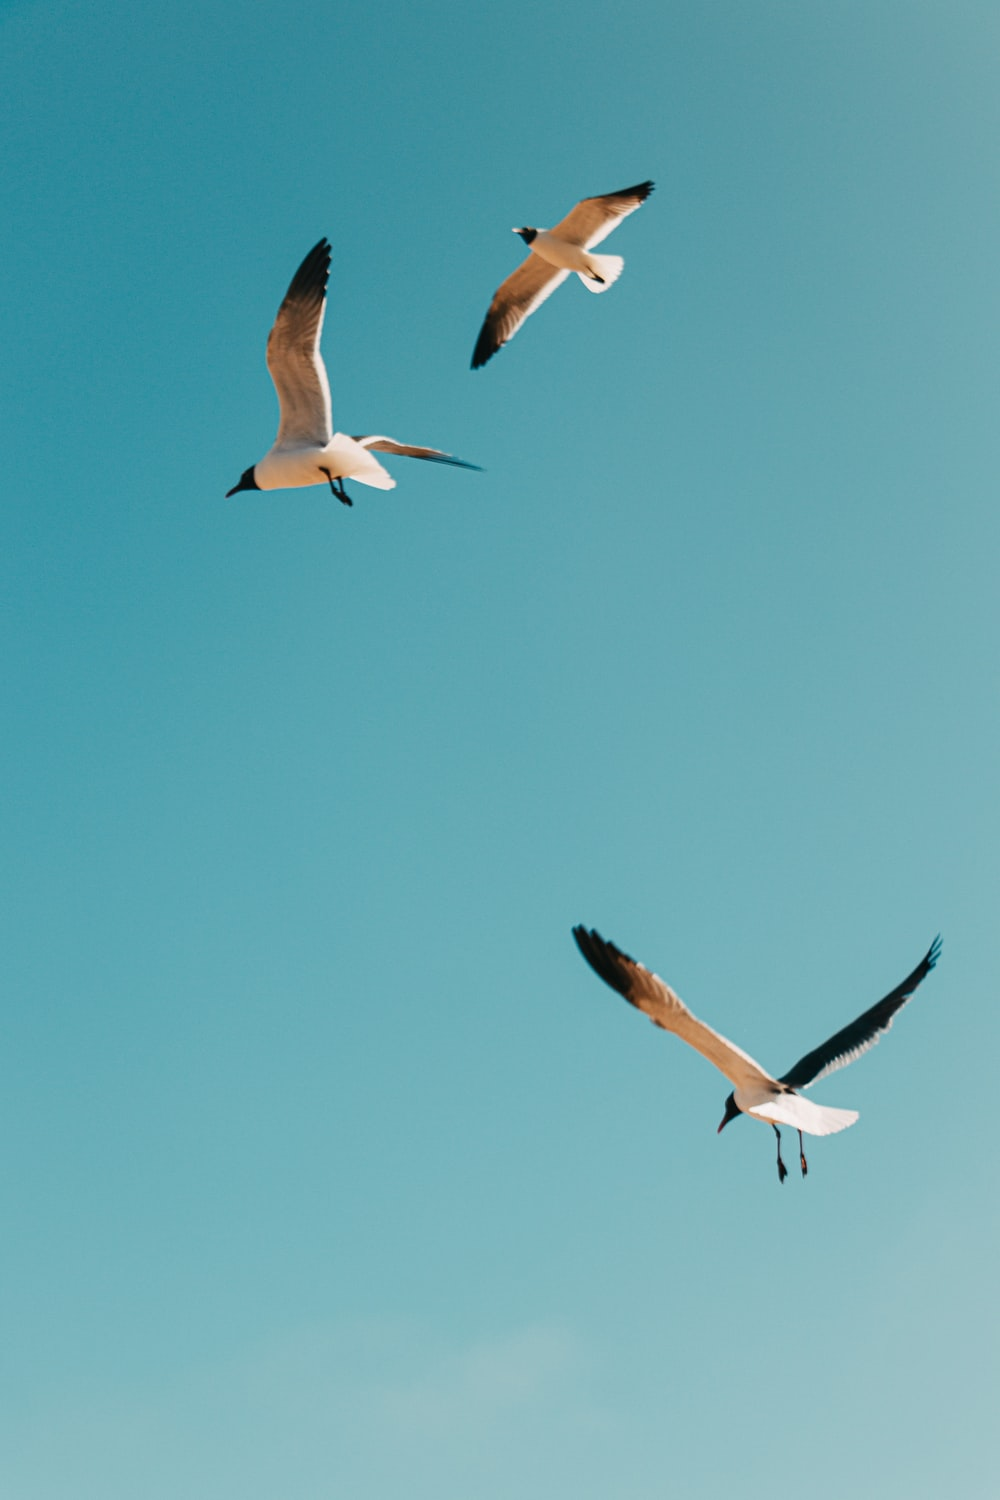 white and black birds flying under blue sky during daytime